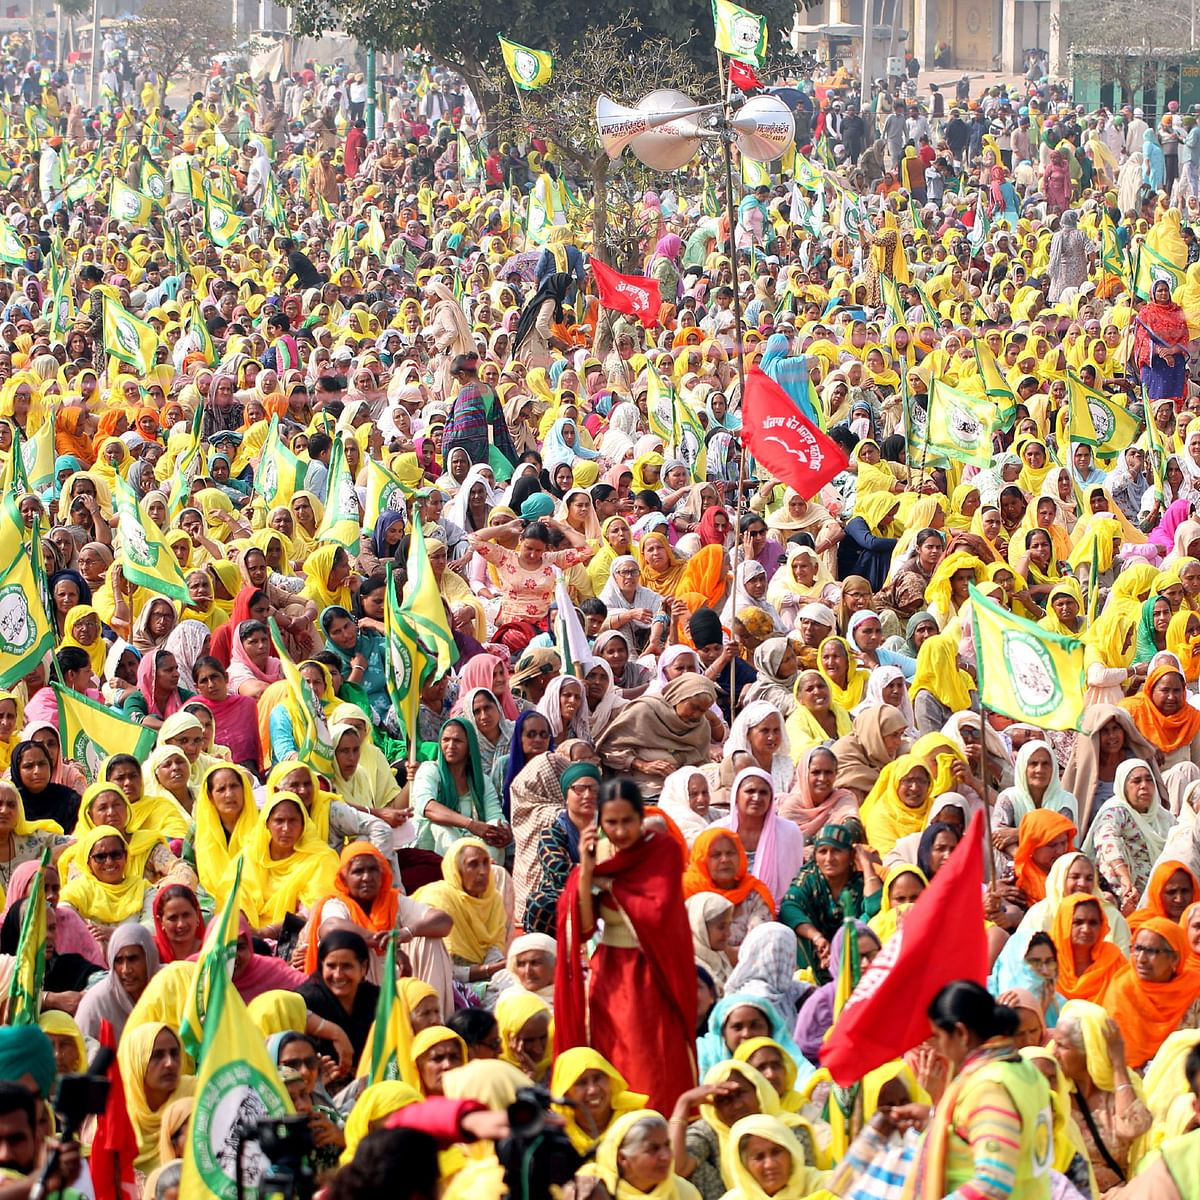 Women Farmers out in large numbers during the Mazdoor Kisan Ekta Maha Rally at grain market, on February 21, 2021 in Barnala, India. (Photo by Sanjeev Kumar/Hindustan Times via Getty Images)